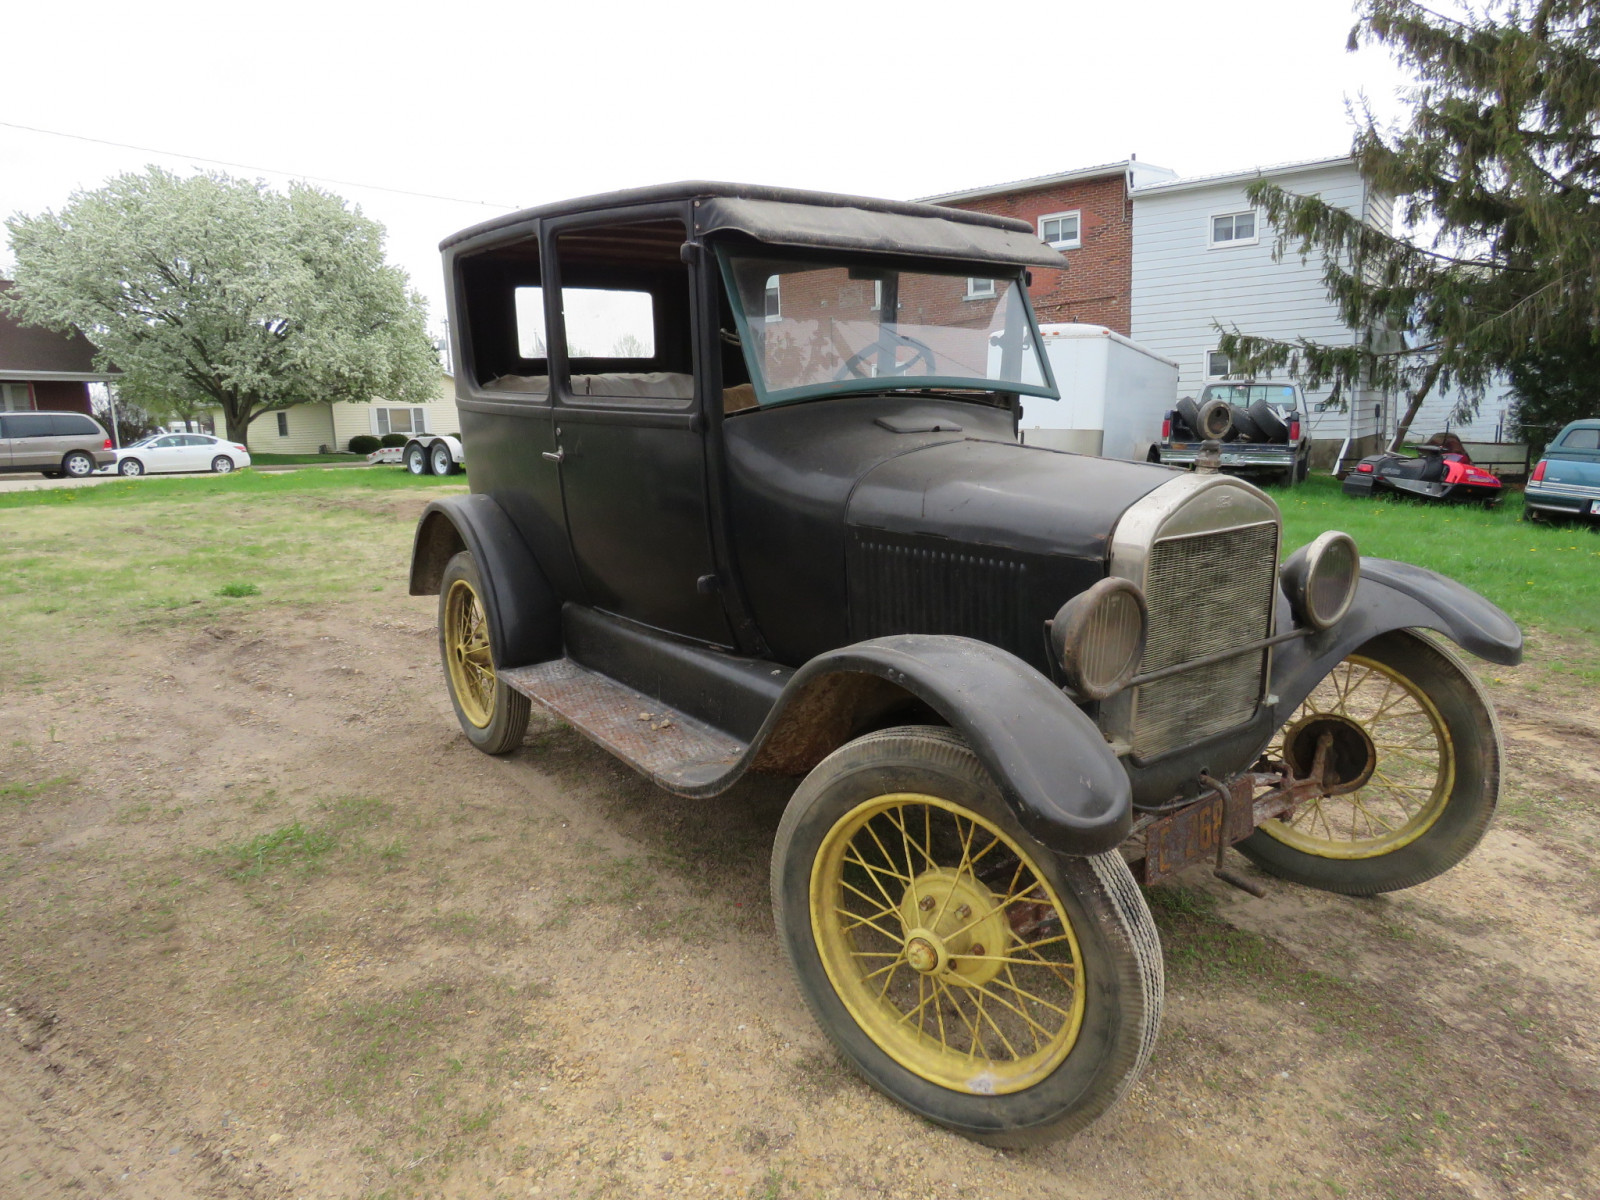 1927 Ford Model T 2dr Sedan - Image 3